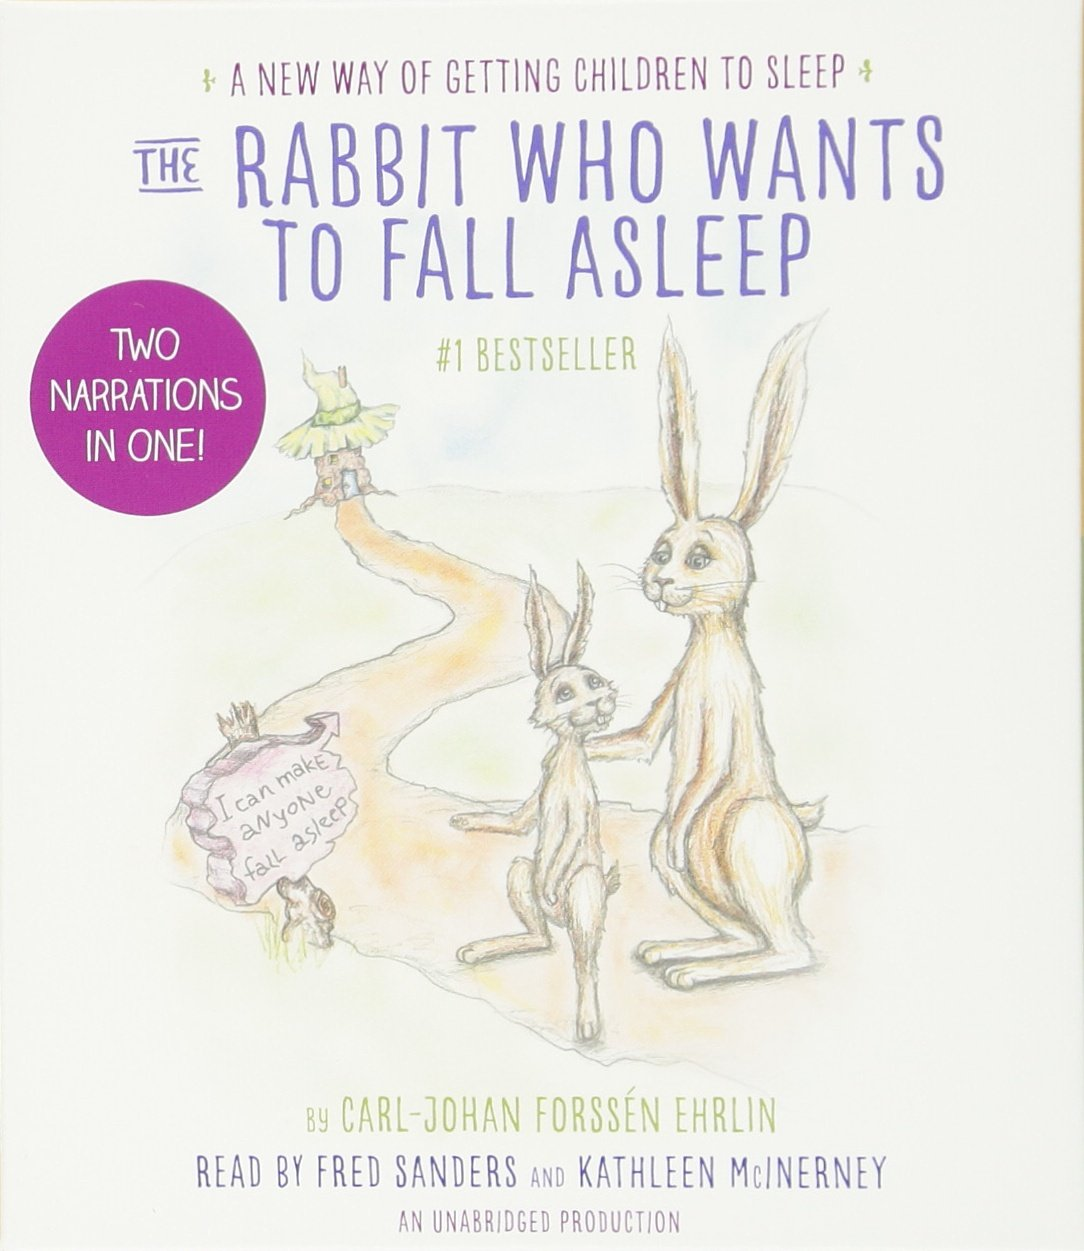 The Rabbit Who Wants To Fall Asleep: A New Way Of Getting Children To  Sleep: Carljohan Forss�n Ehrlin, Fred Sanders, Kathleen Mcinerney:  9780451484635: